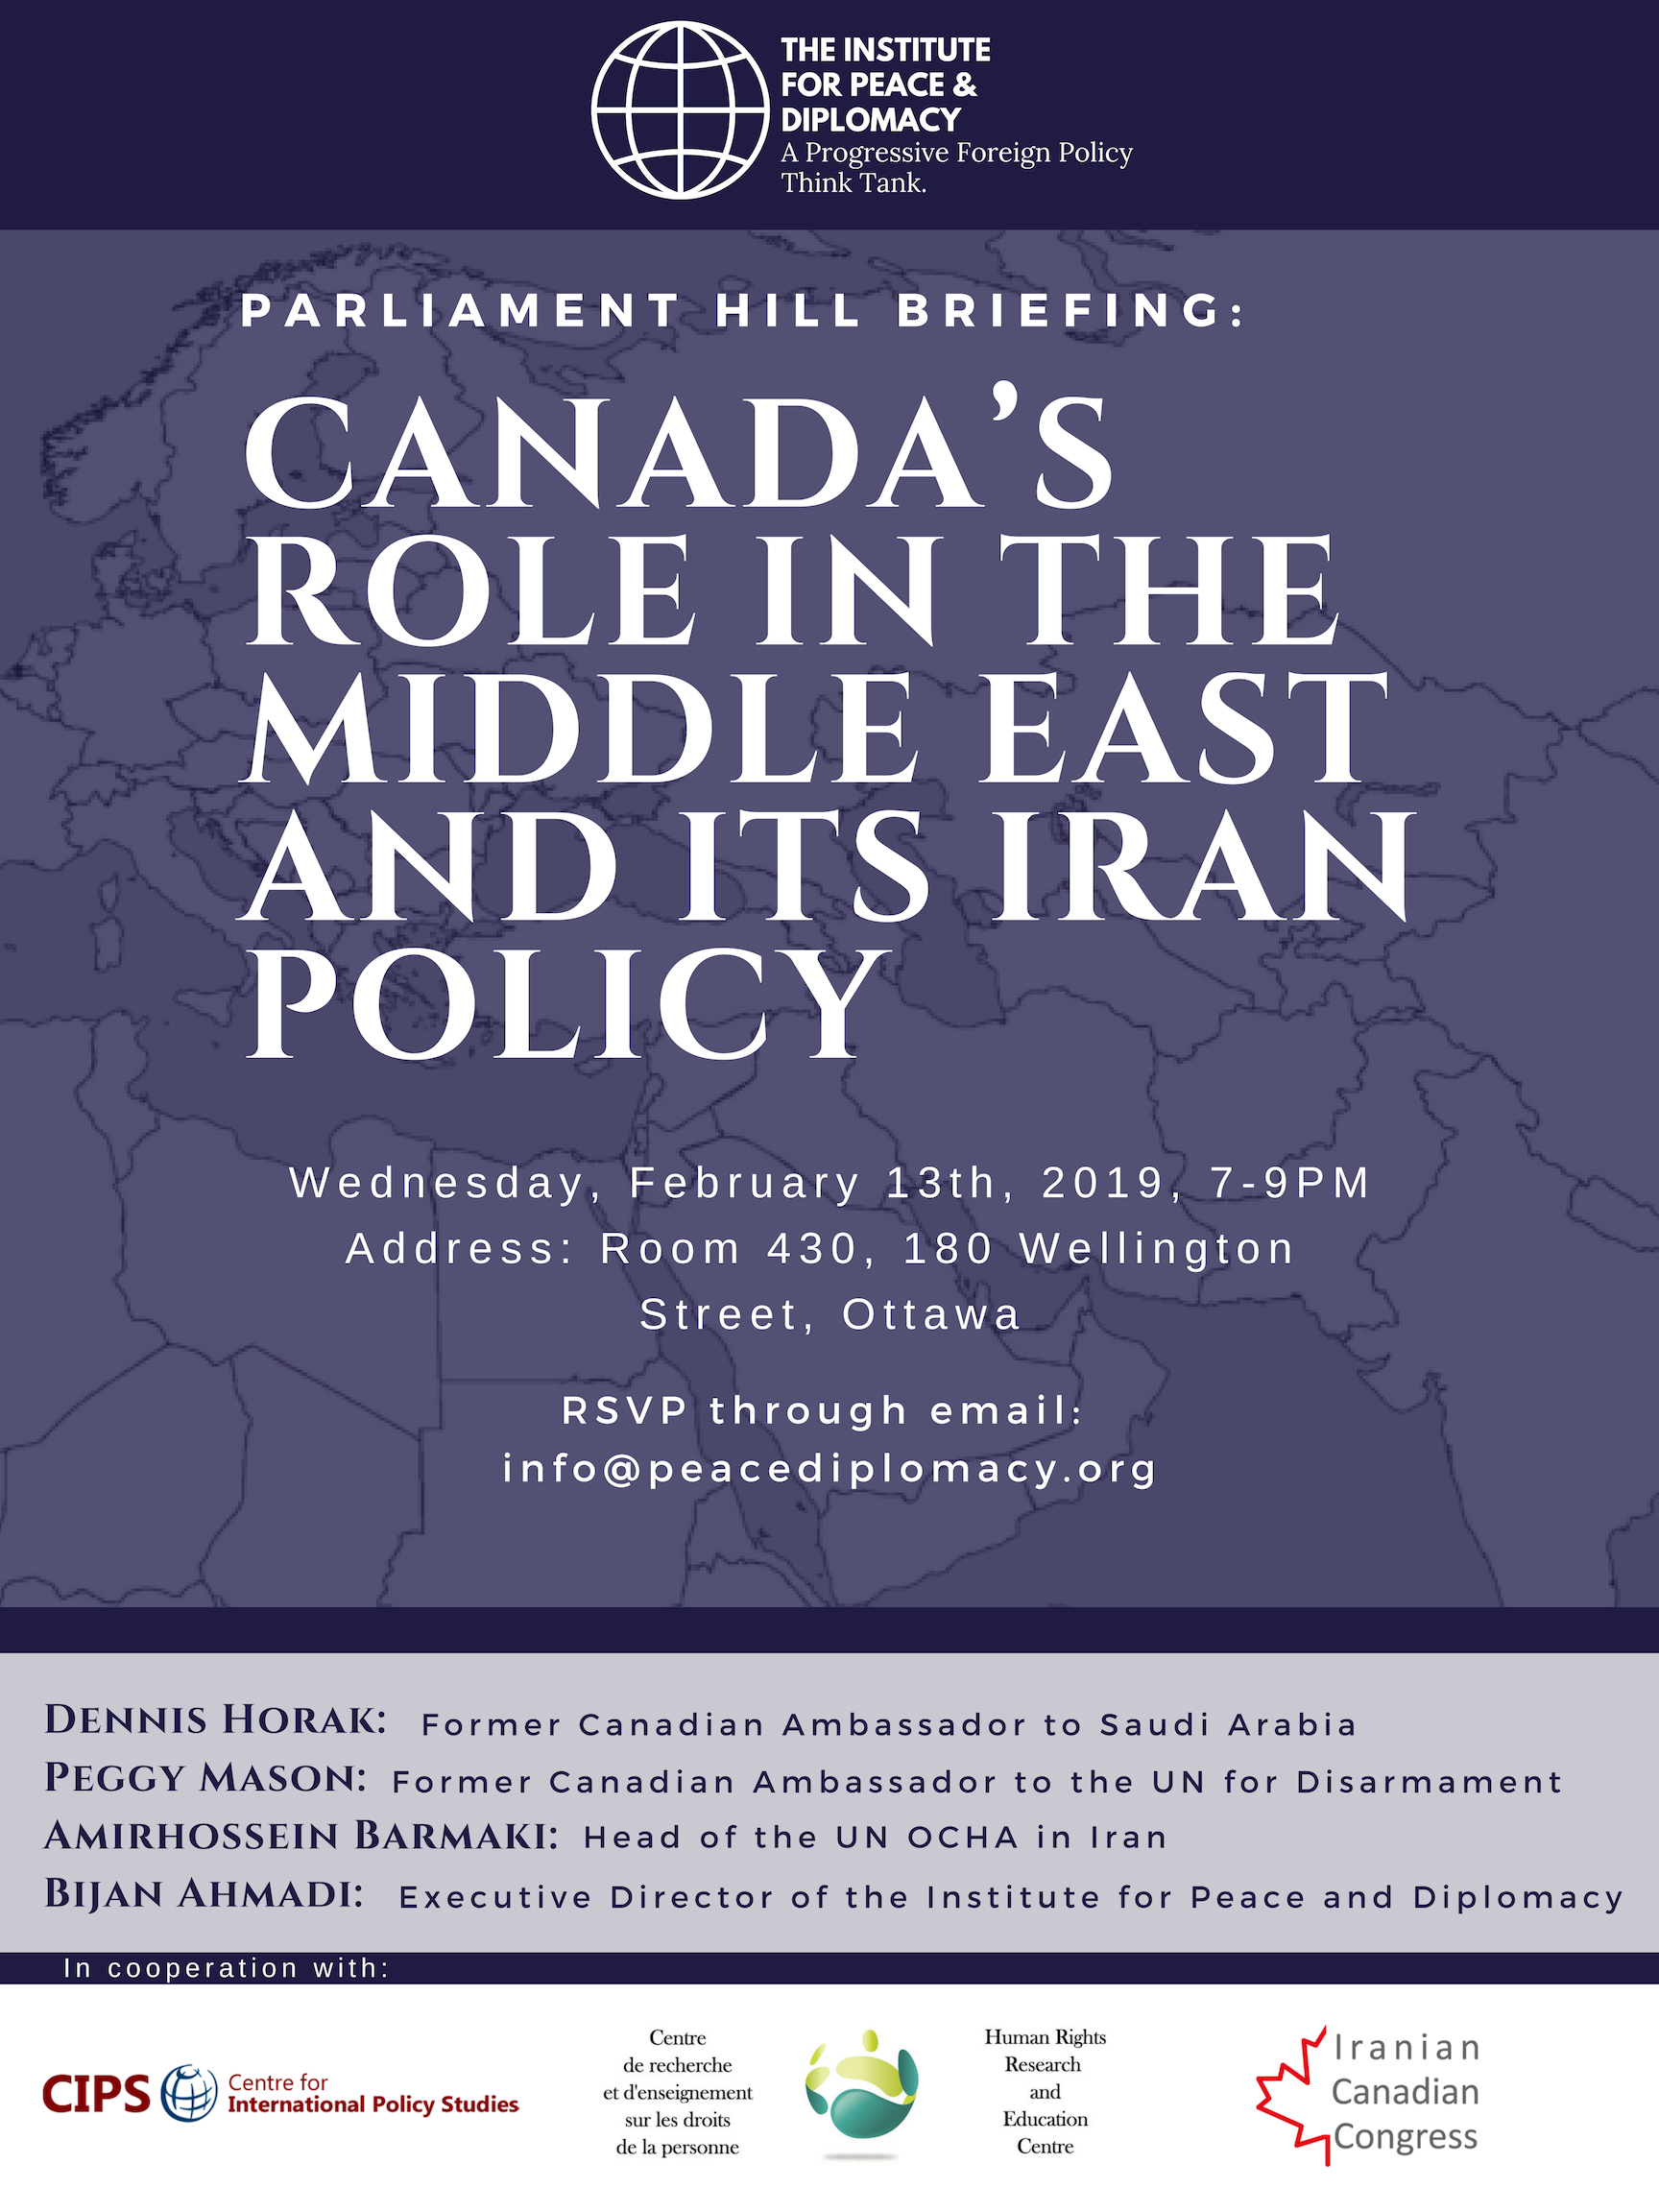 Canada's Role in the Middle East and its Iran Policy